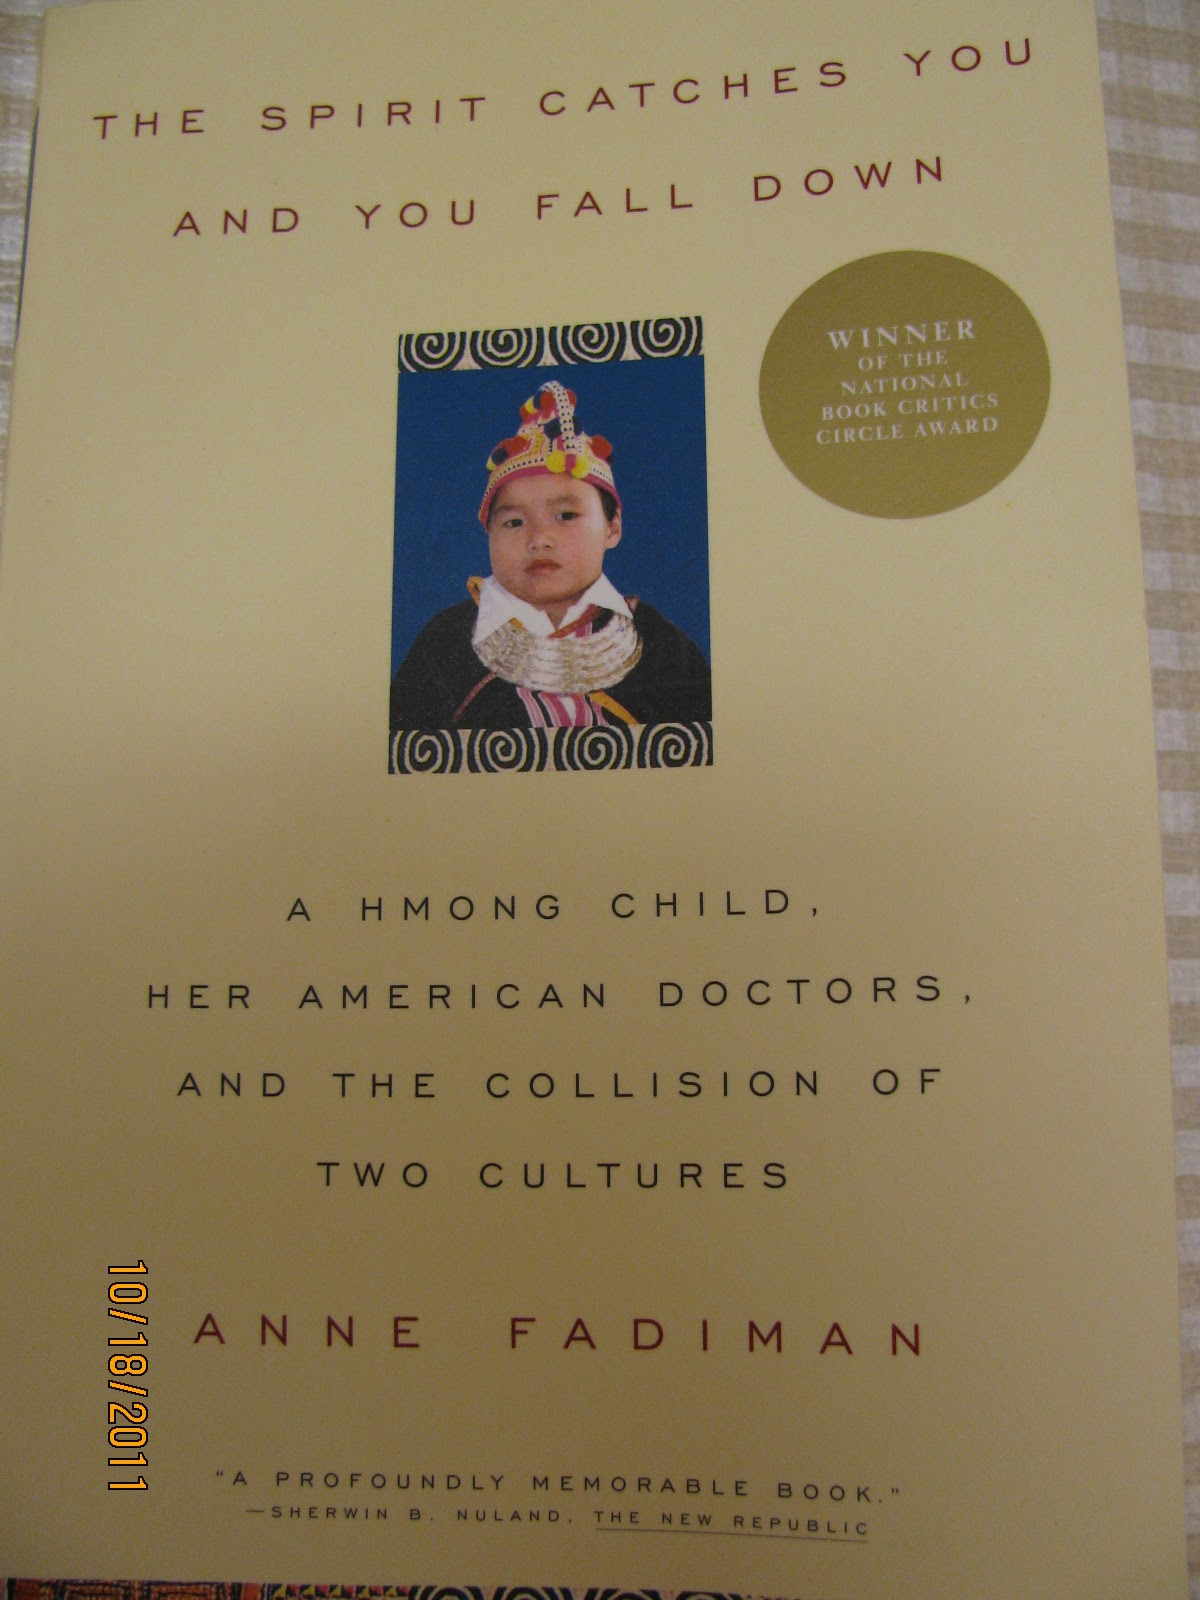 In Defense of The Spirit Of An Author: On Anne Fadiman's